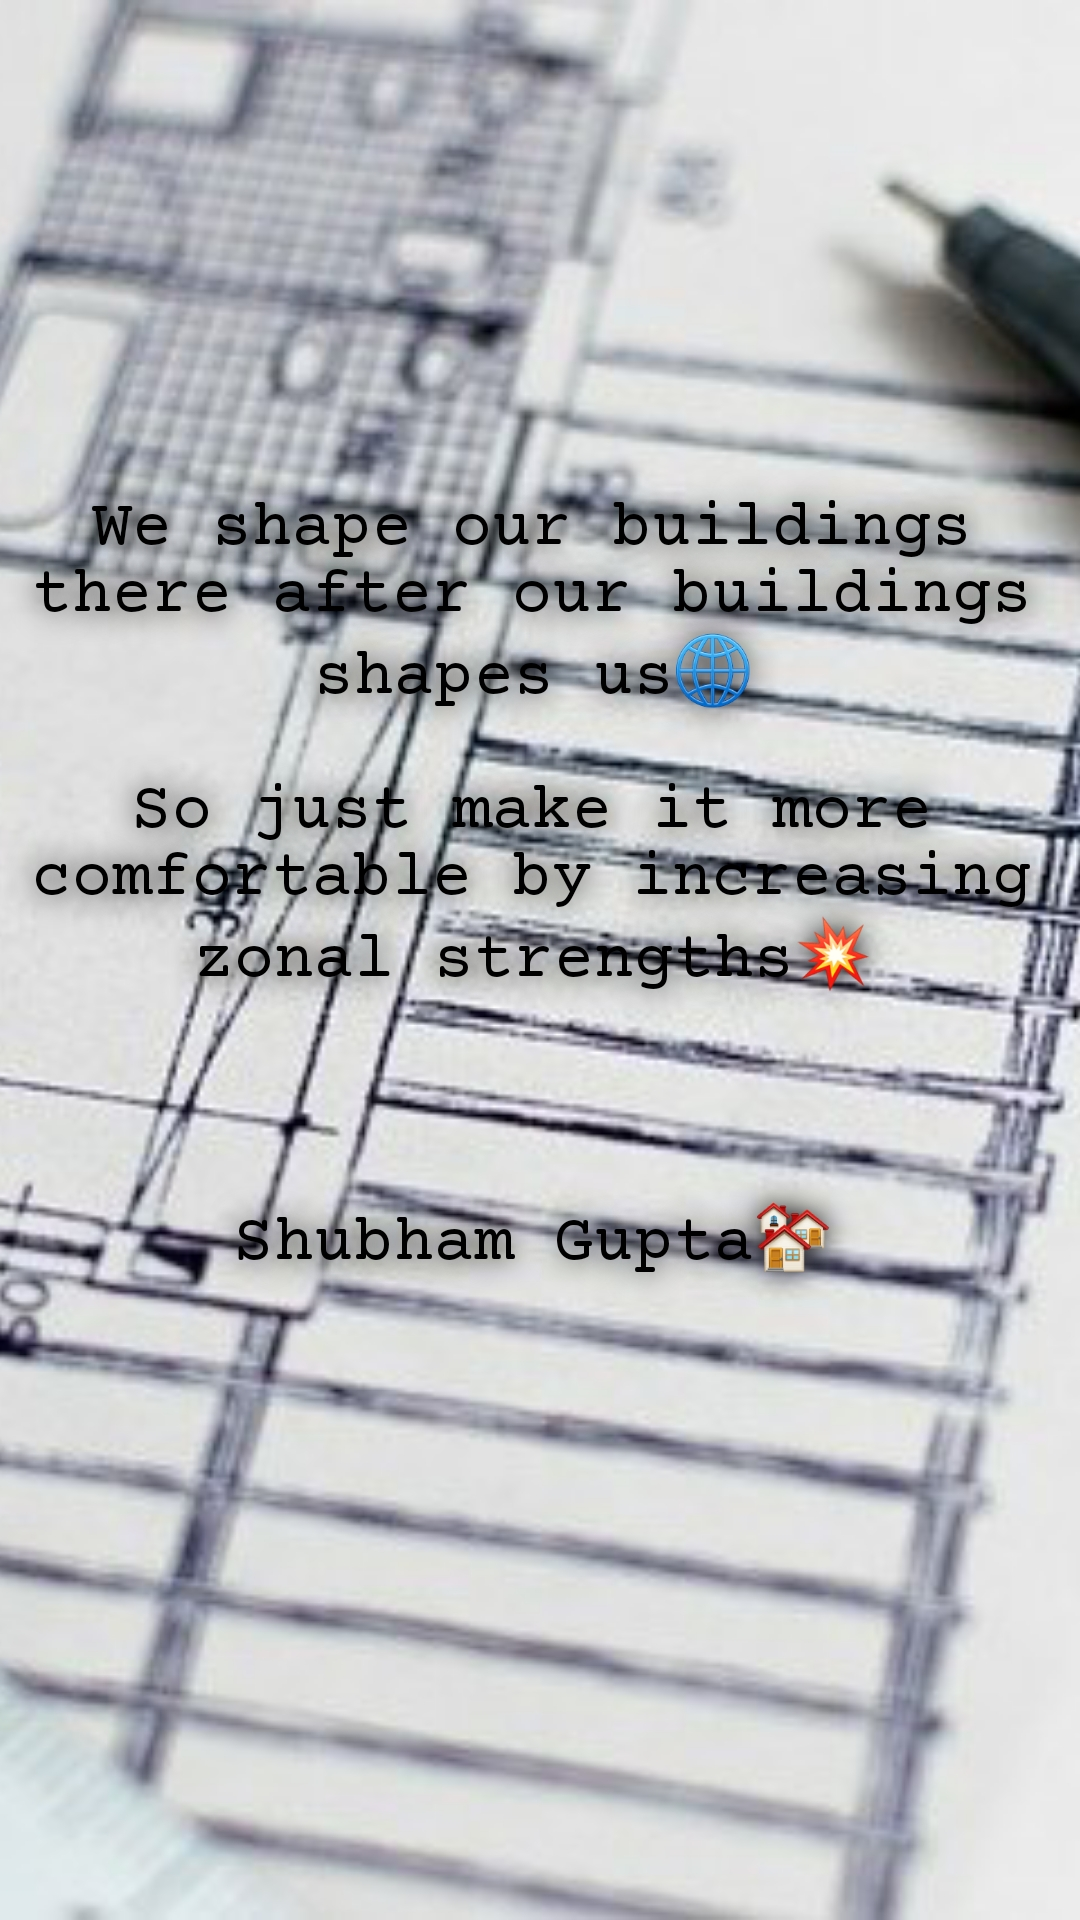 We shape our buildings there after our buildings shapes us🌐  So just make it more comfortable by increasing zonal strengths💥    Shubham Gupta🏘